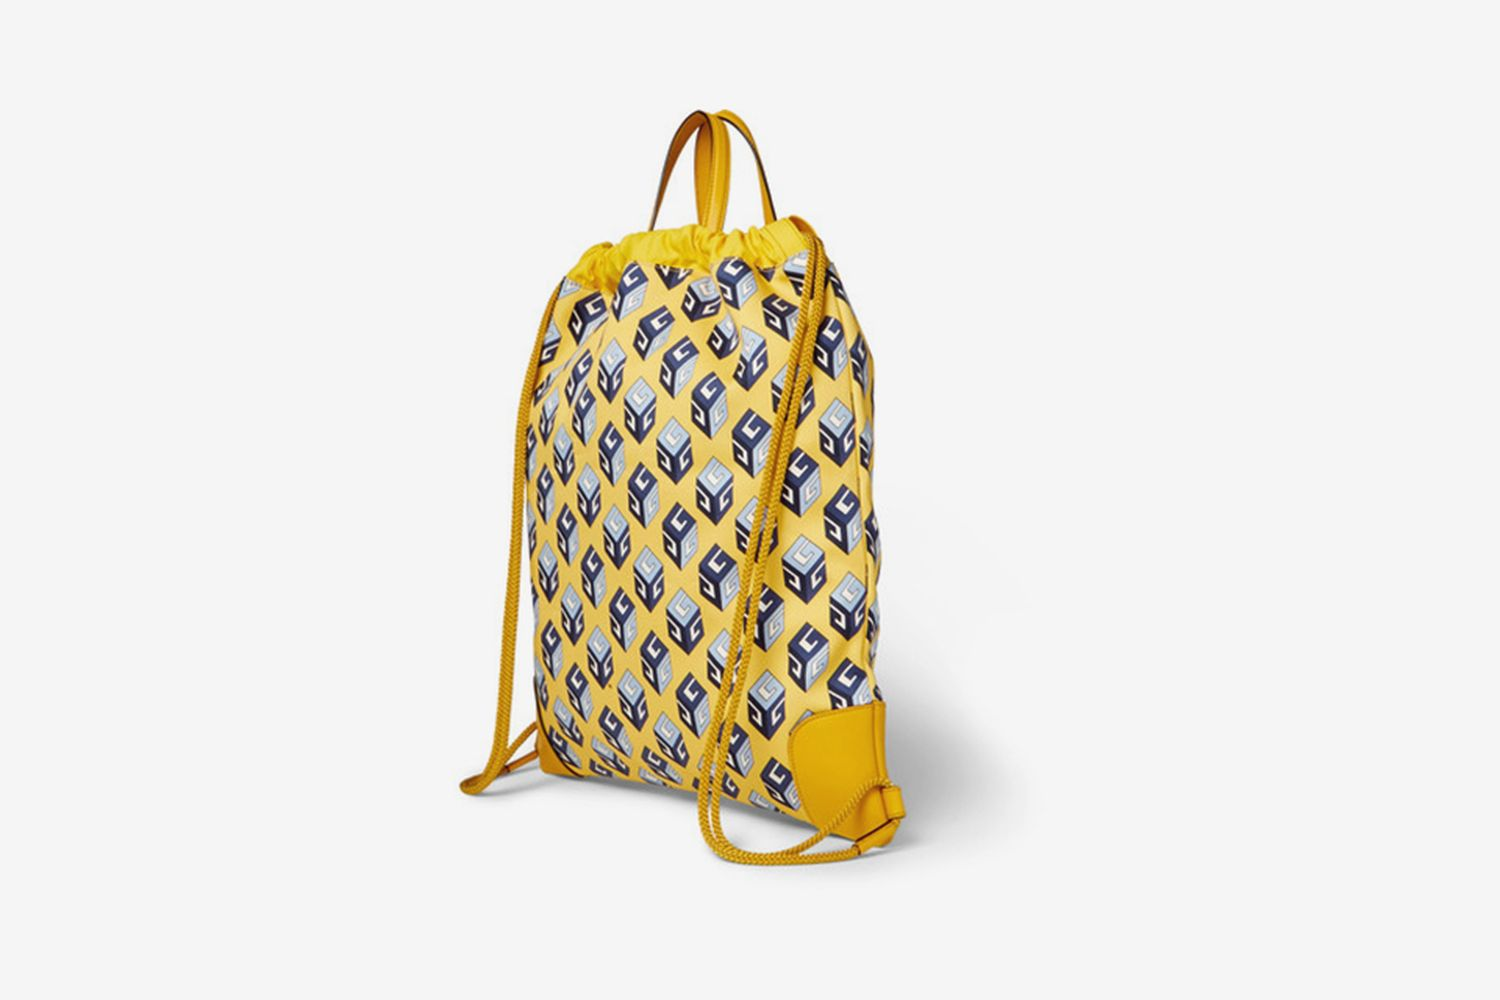 Leather-Trimmed Printed Canvas Drawstring Backpack